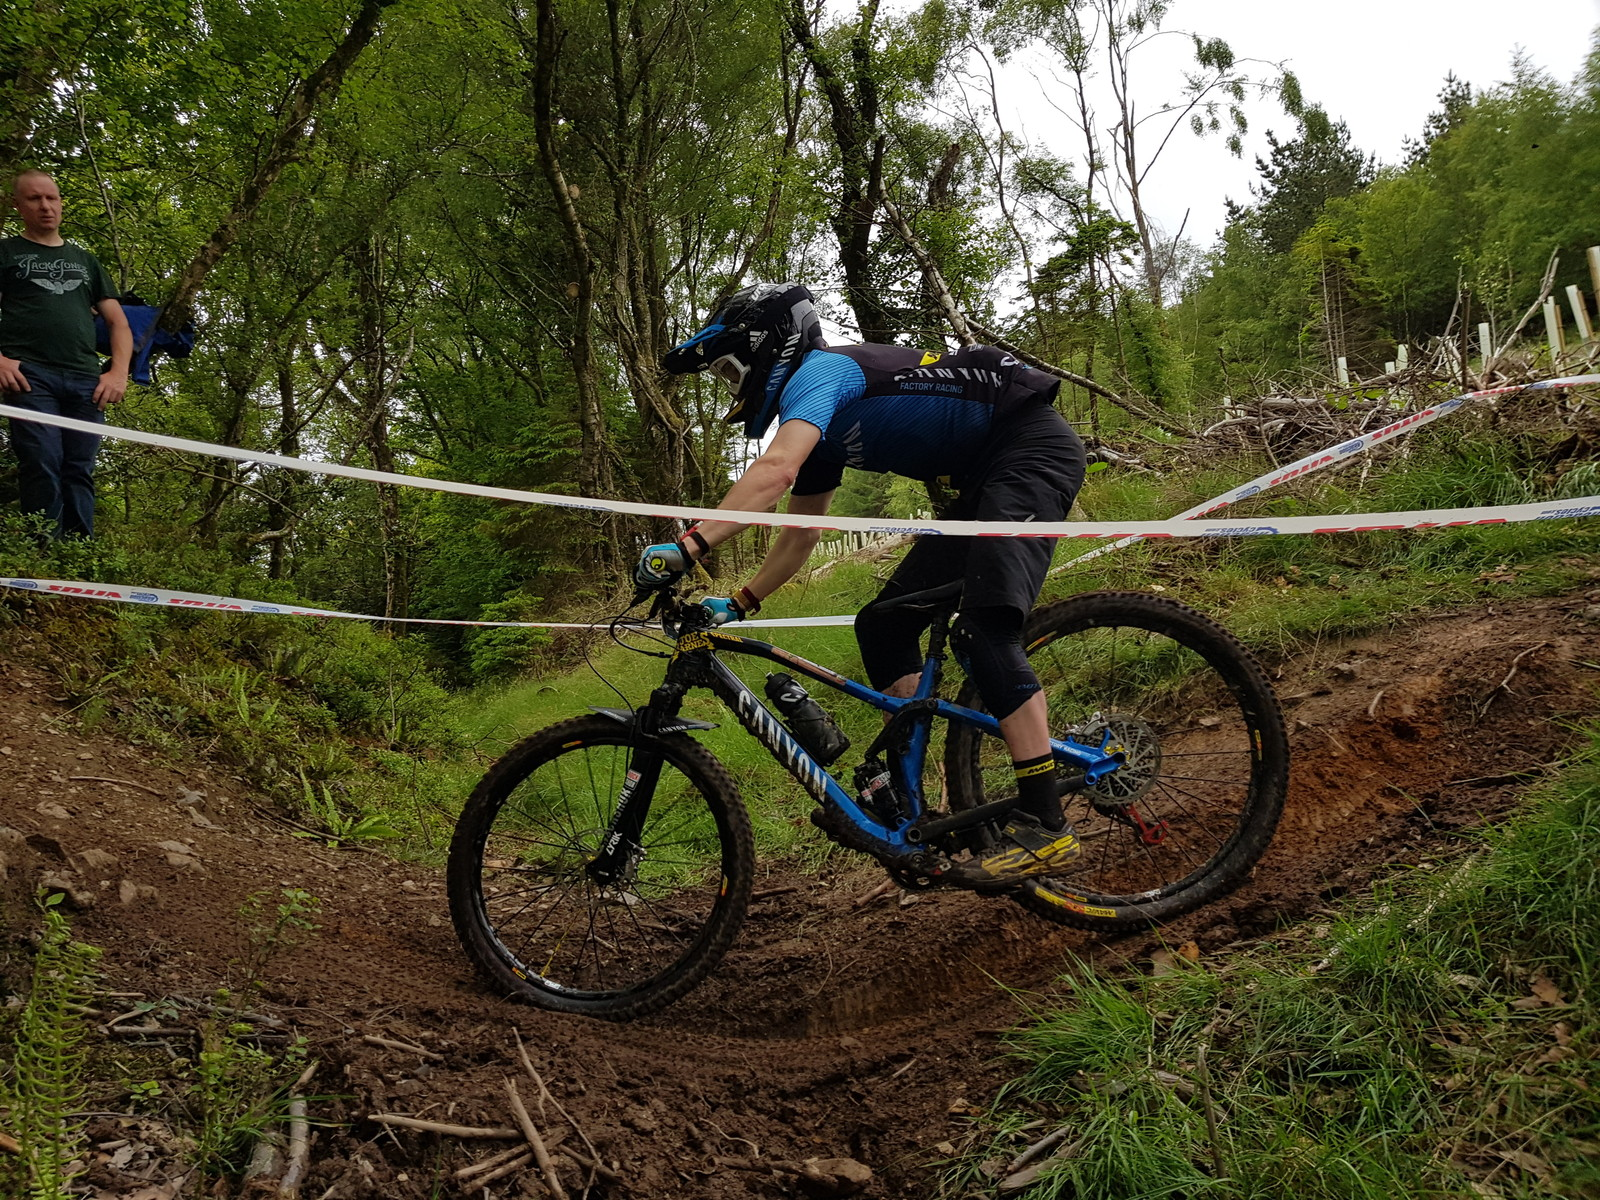 Joe Barnes' Canyon Spectral G-ed Out - G-out Project: EWS Ireland 2017 - Mountain Biking Pictures - Vital MTB